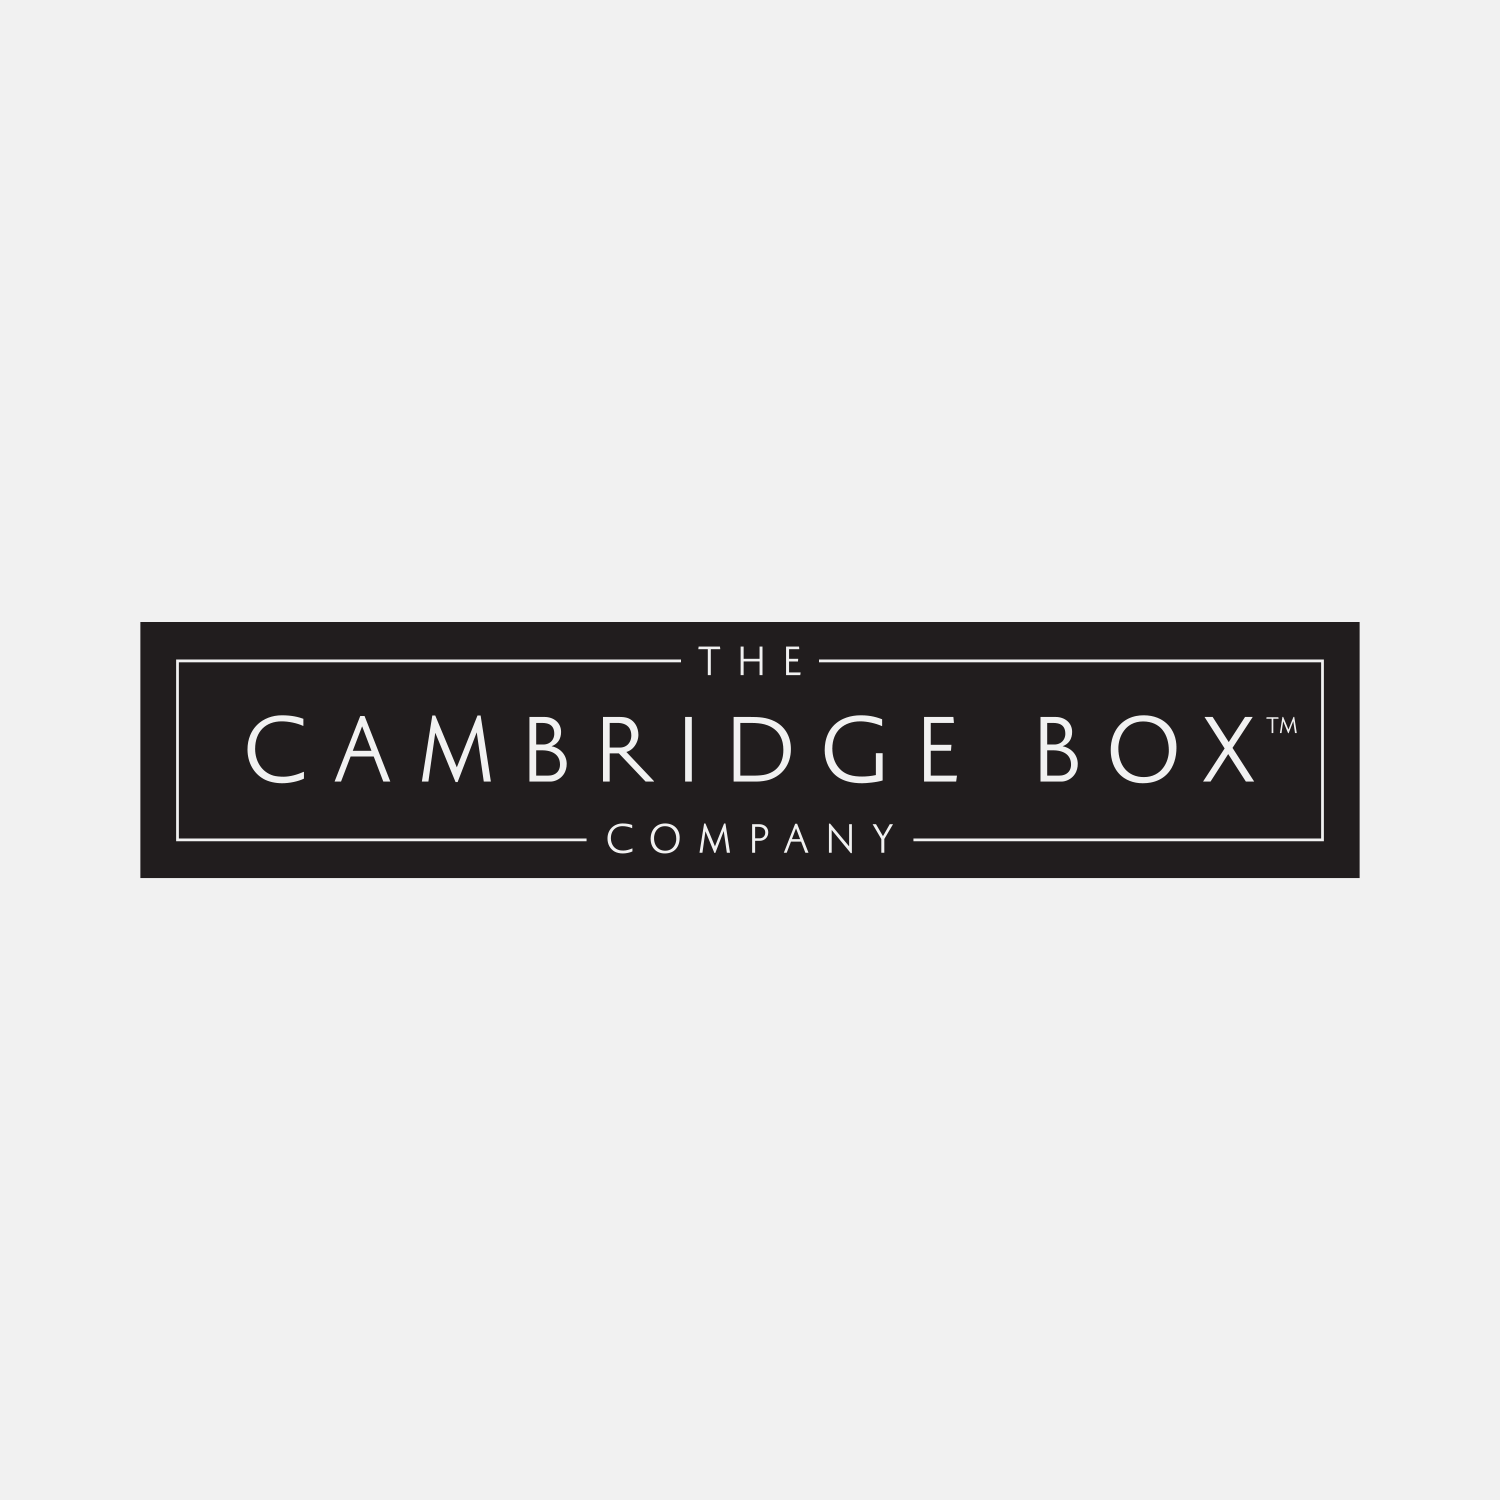 Cambridge Box Company logo design